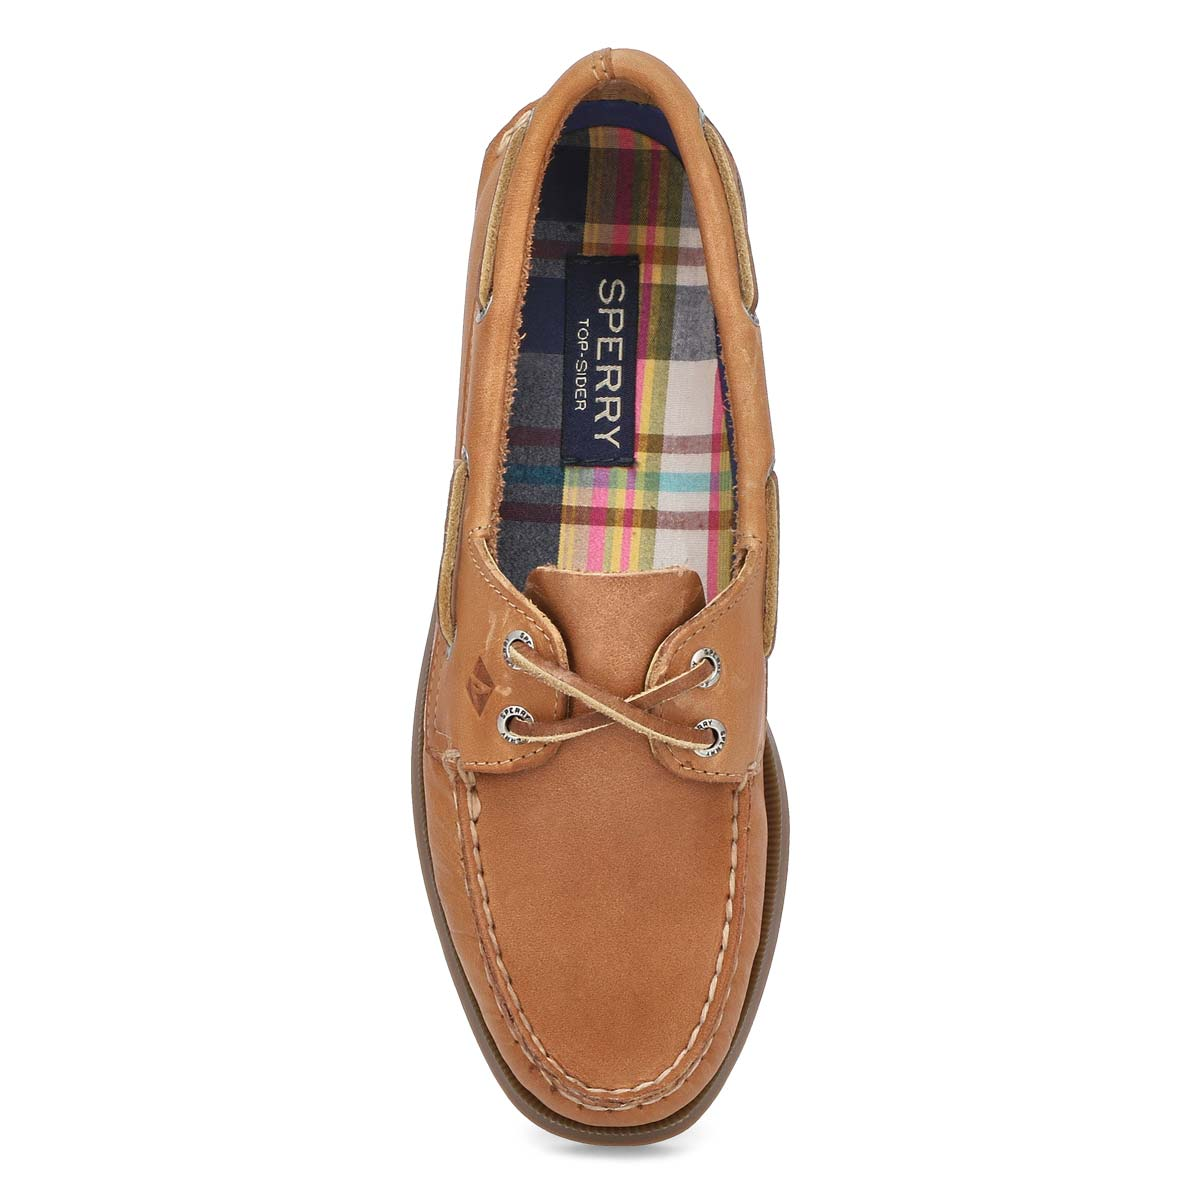 Lds A/O 2-eye sahara boat shoe